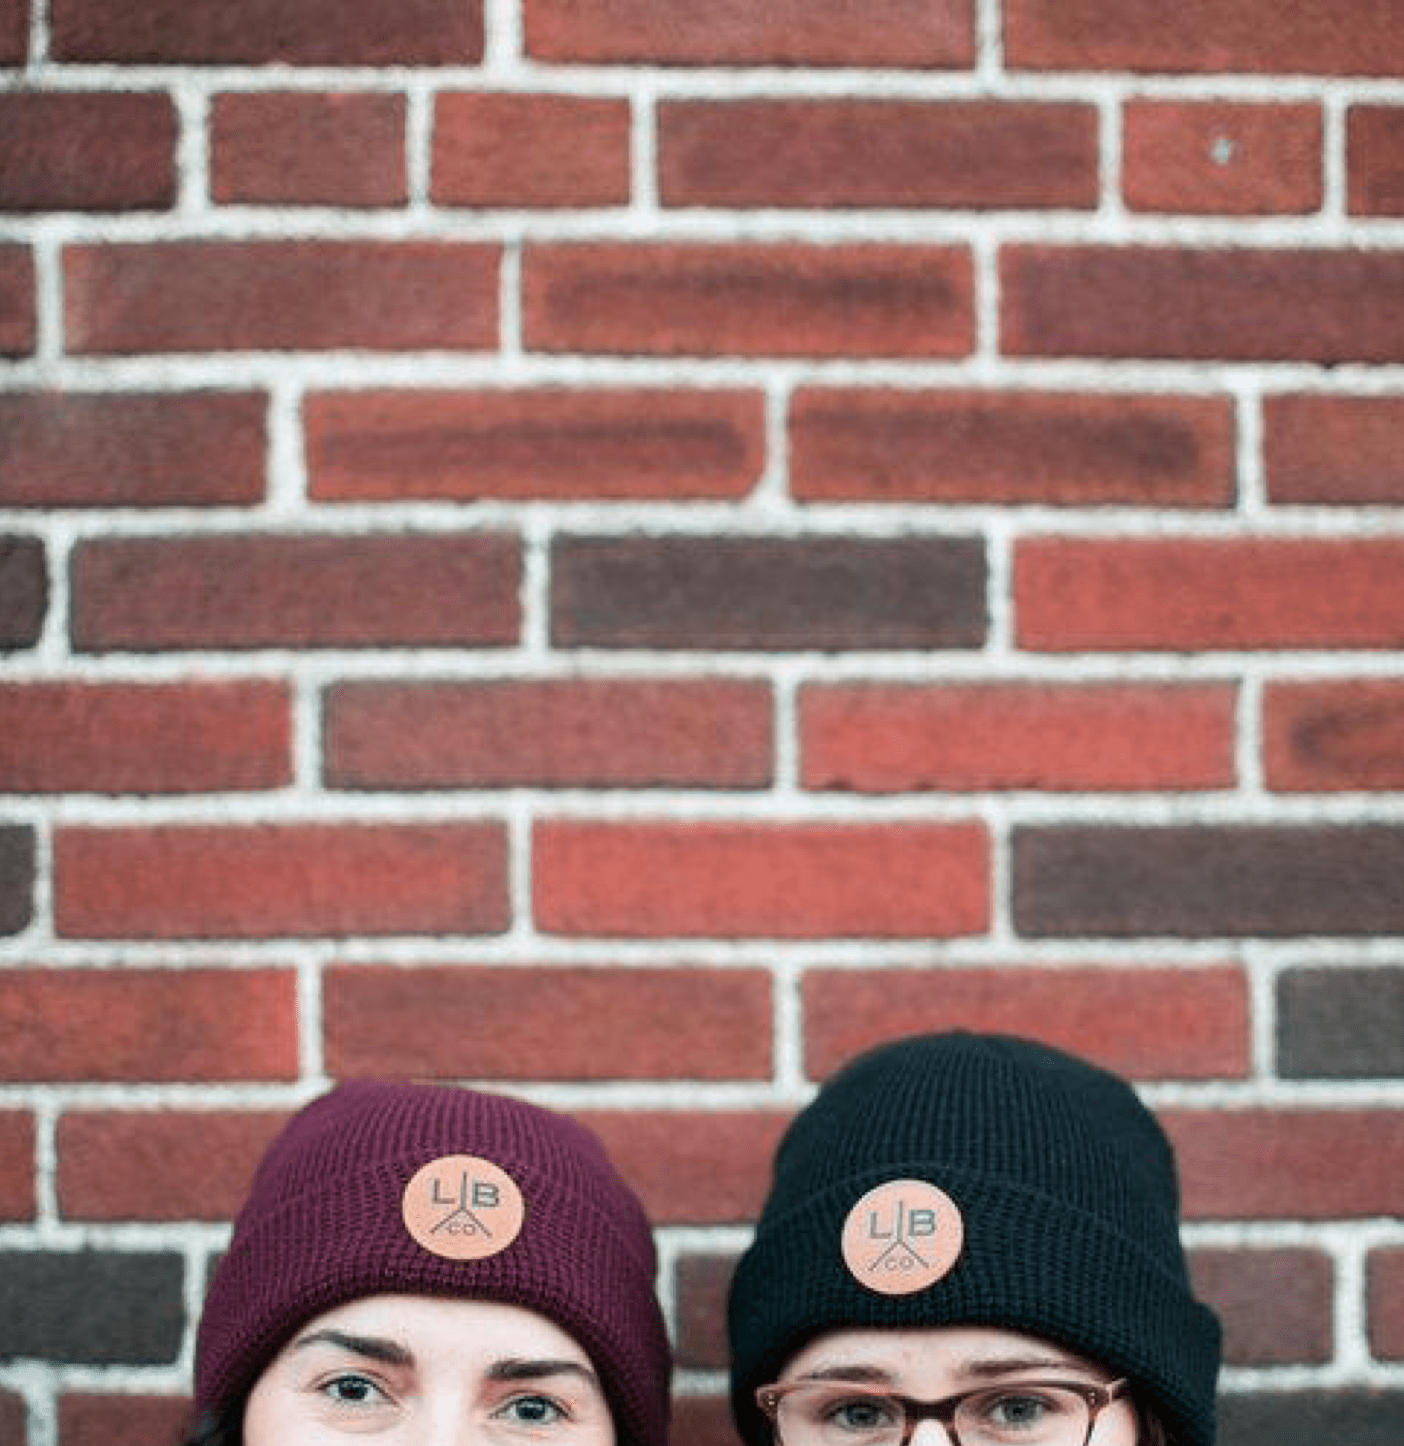 86e64c4bfeccd Beanies – Lamplighter Brewing Co.